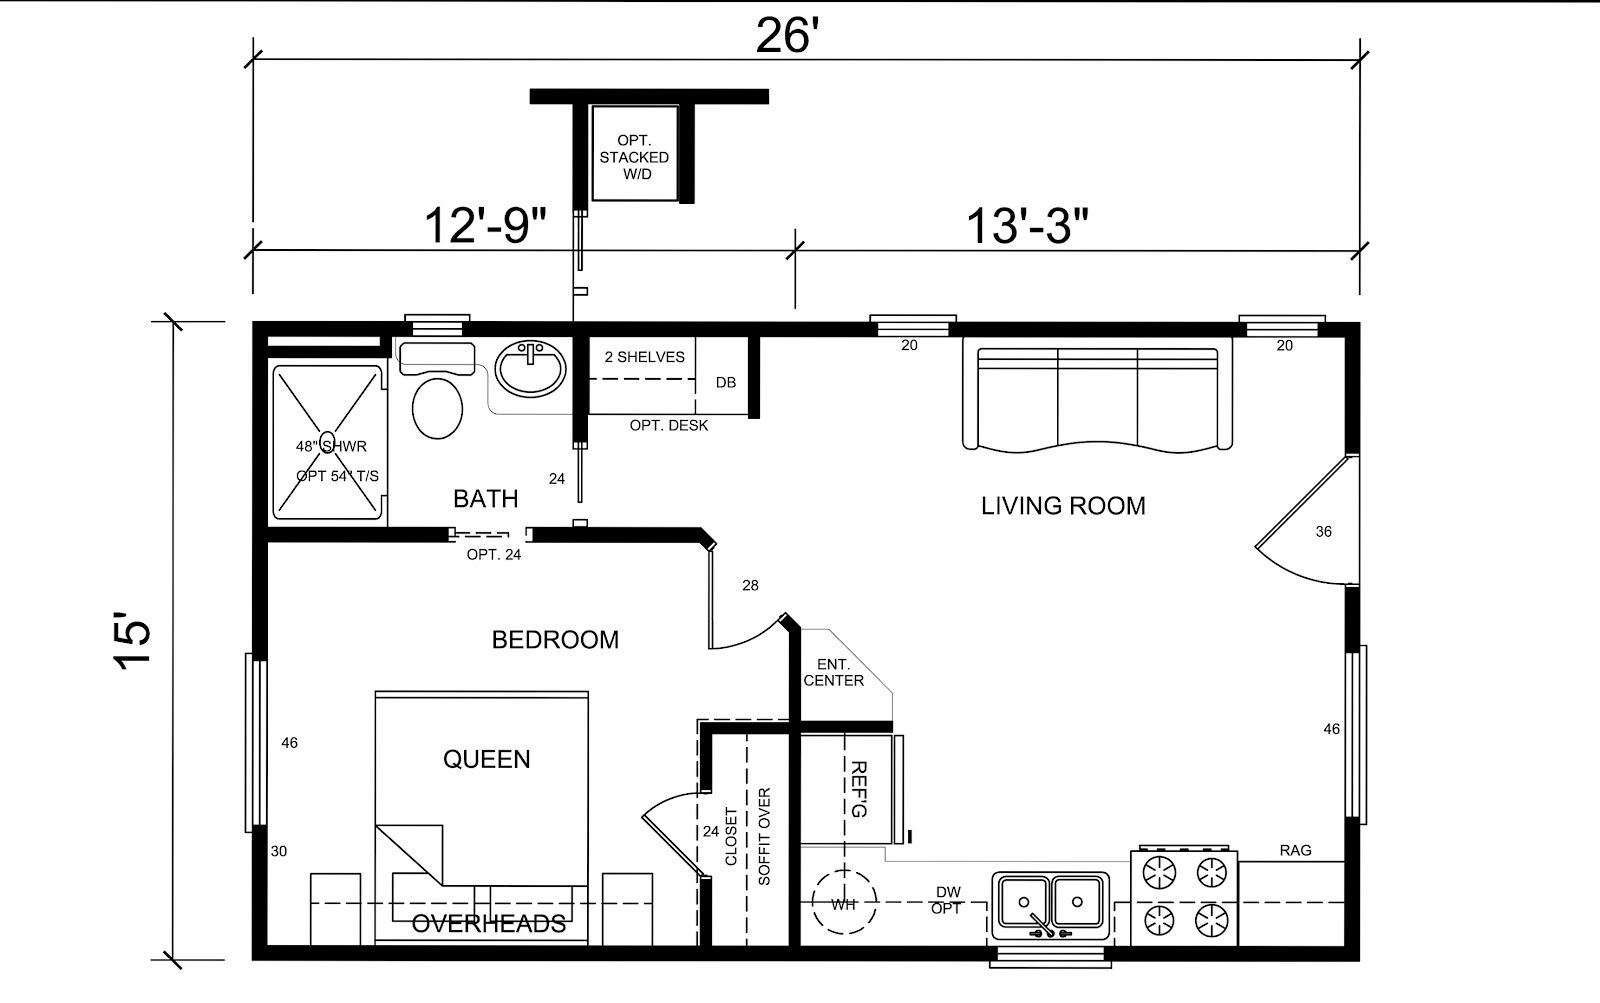 Amazing 78 Best Images About Carriage Home Plans On Pinterest Smart Largest Home Design Picture Inspirations Pitcheantrous